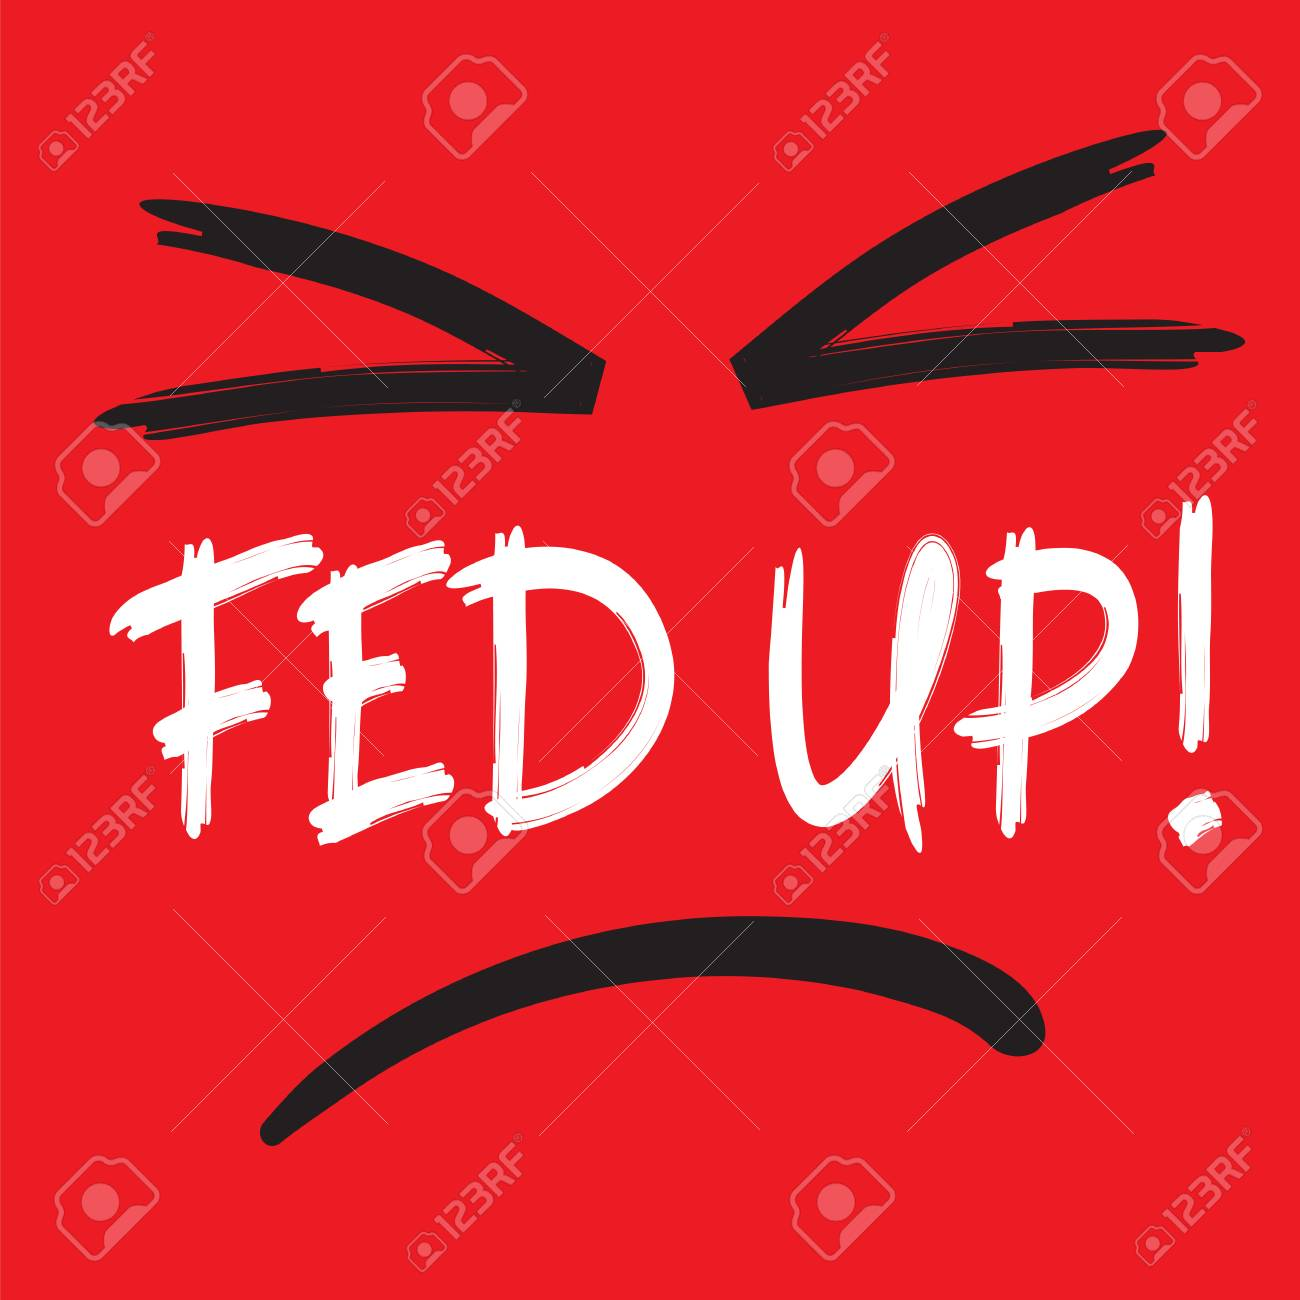 fed up emotional handwritten quote american slang urban rh 123rf com fed up with fed up meaning